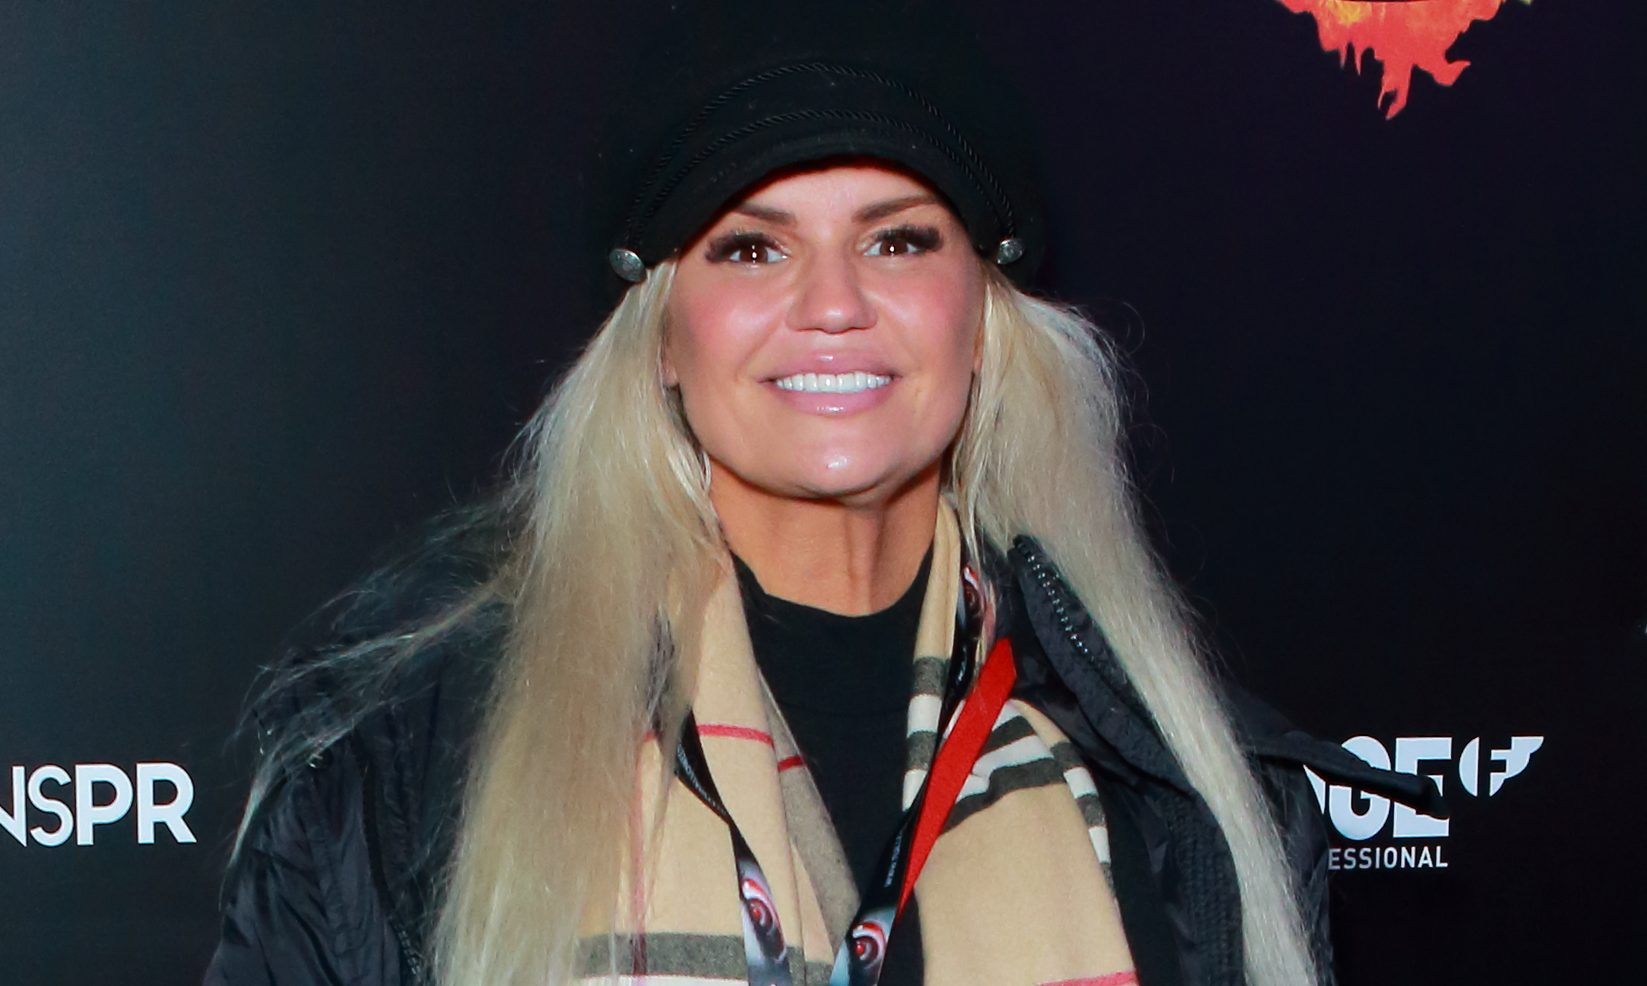 Furious Kerry Katona fans hit back as star is slammed over tyre post